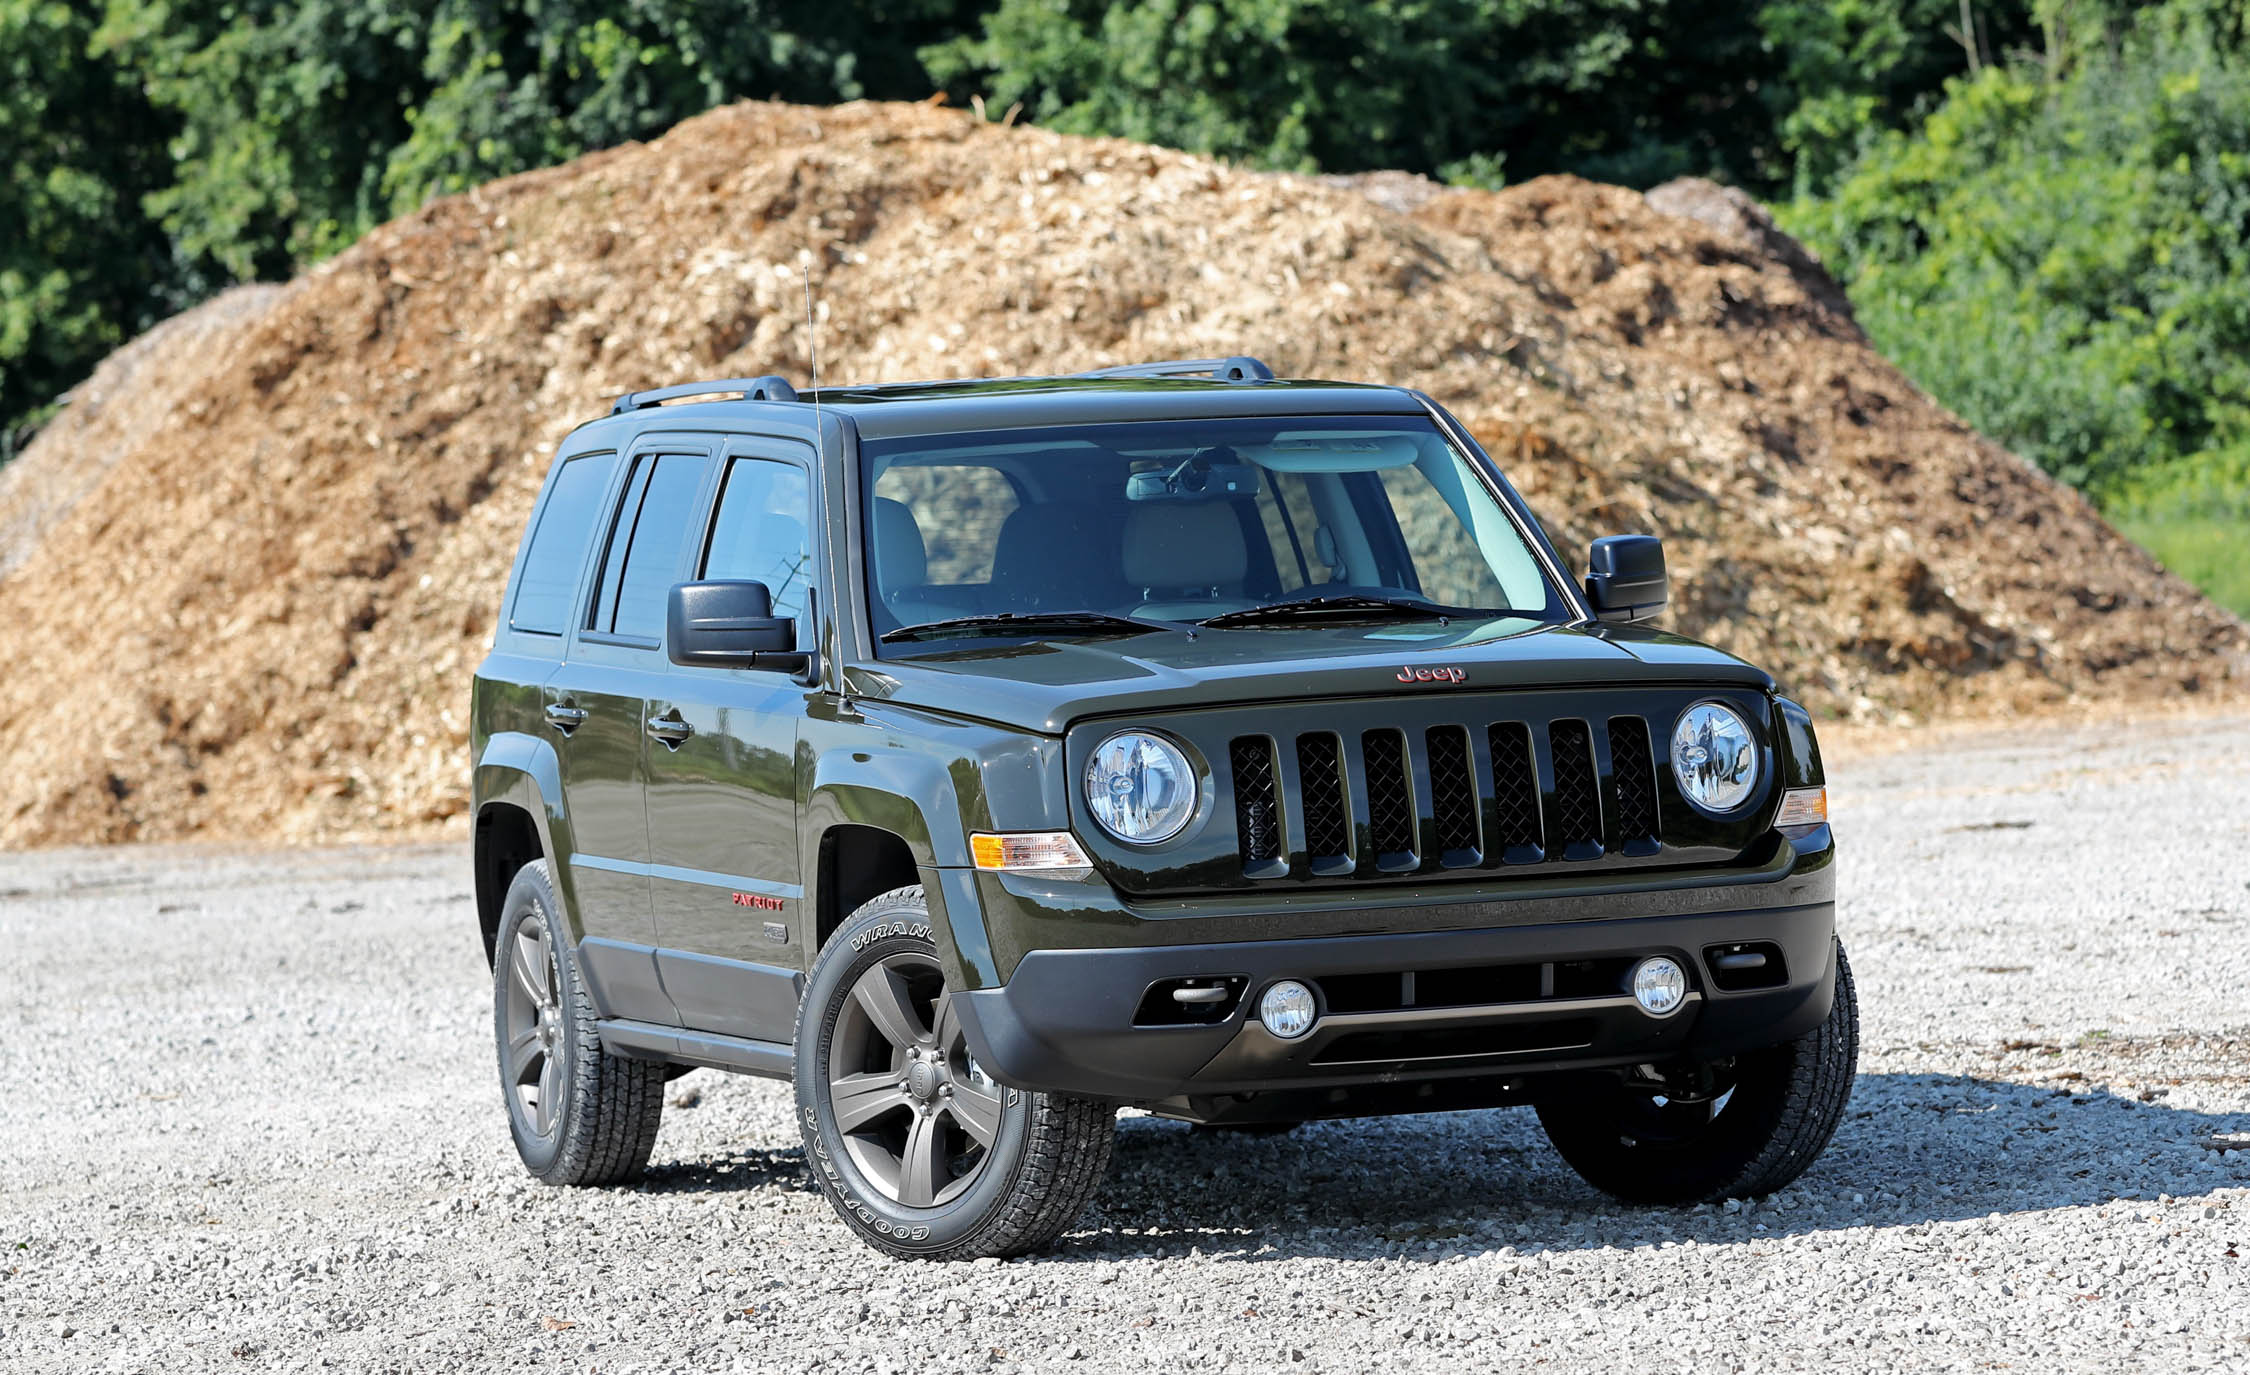 2016 Jeep Patriot Exterior Preview (Photo 5 of 27)